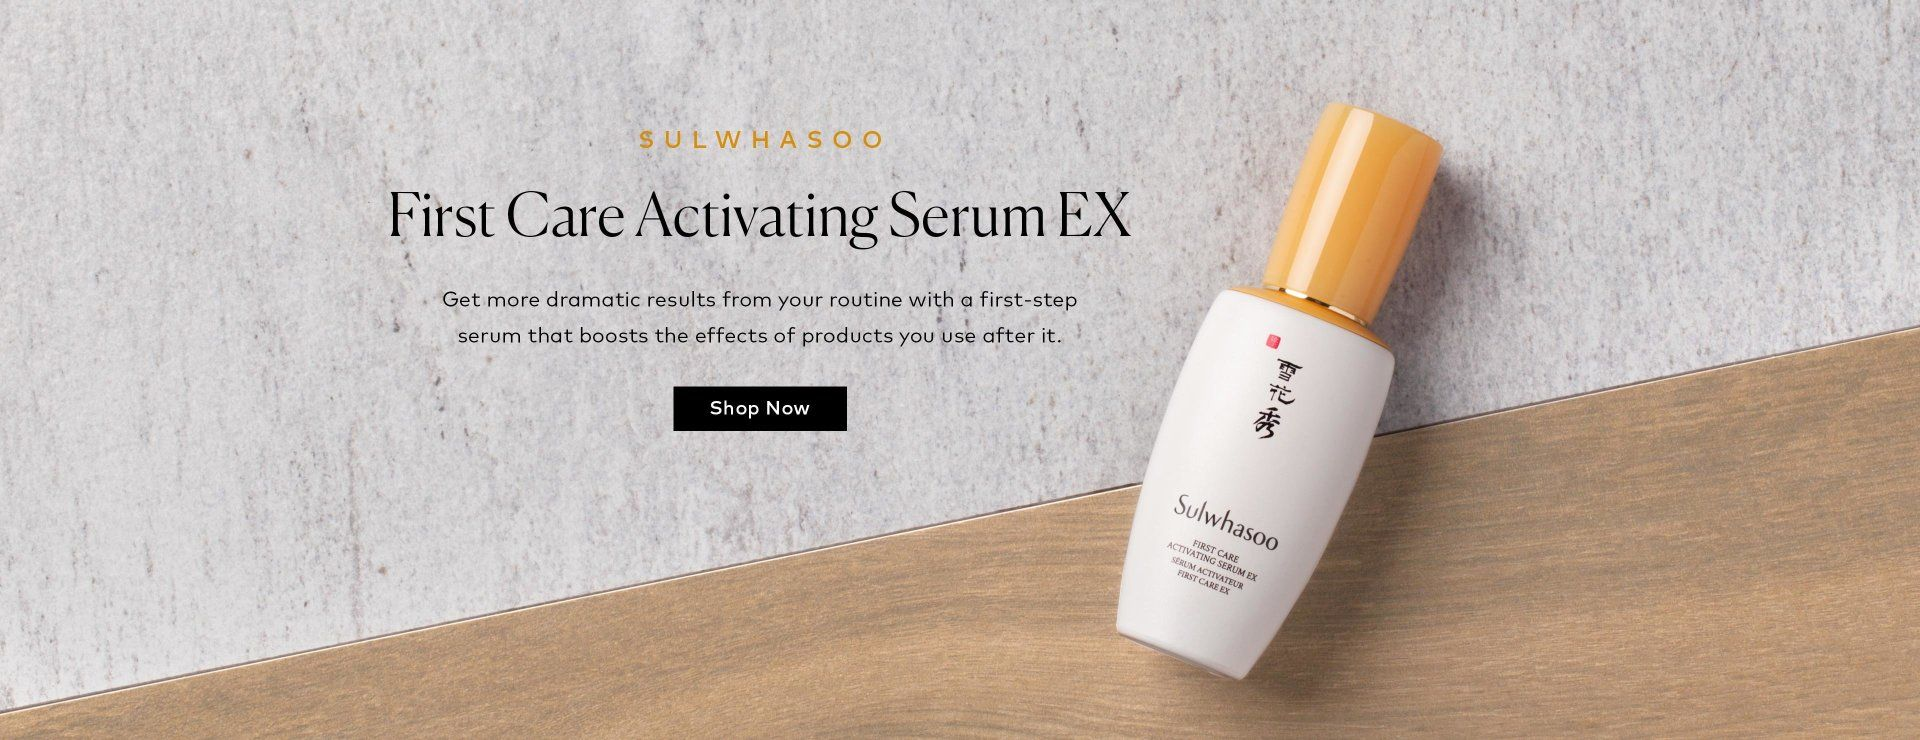 Shop Sulwhasoo's First Care Activating Serum EX